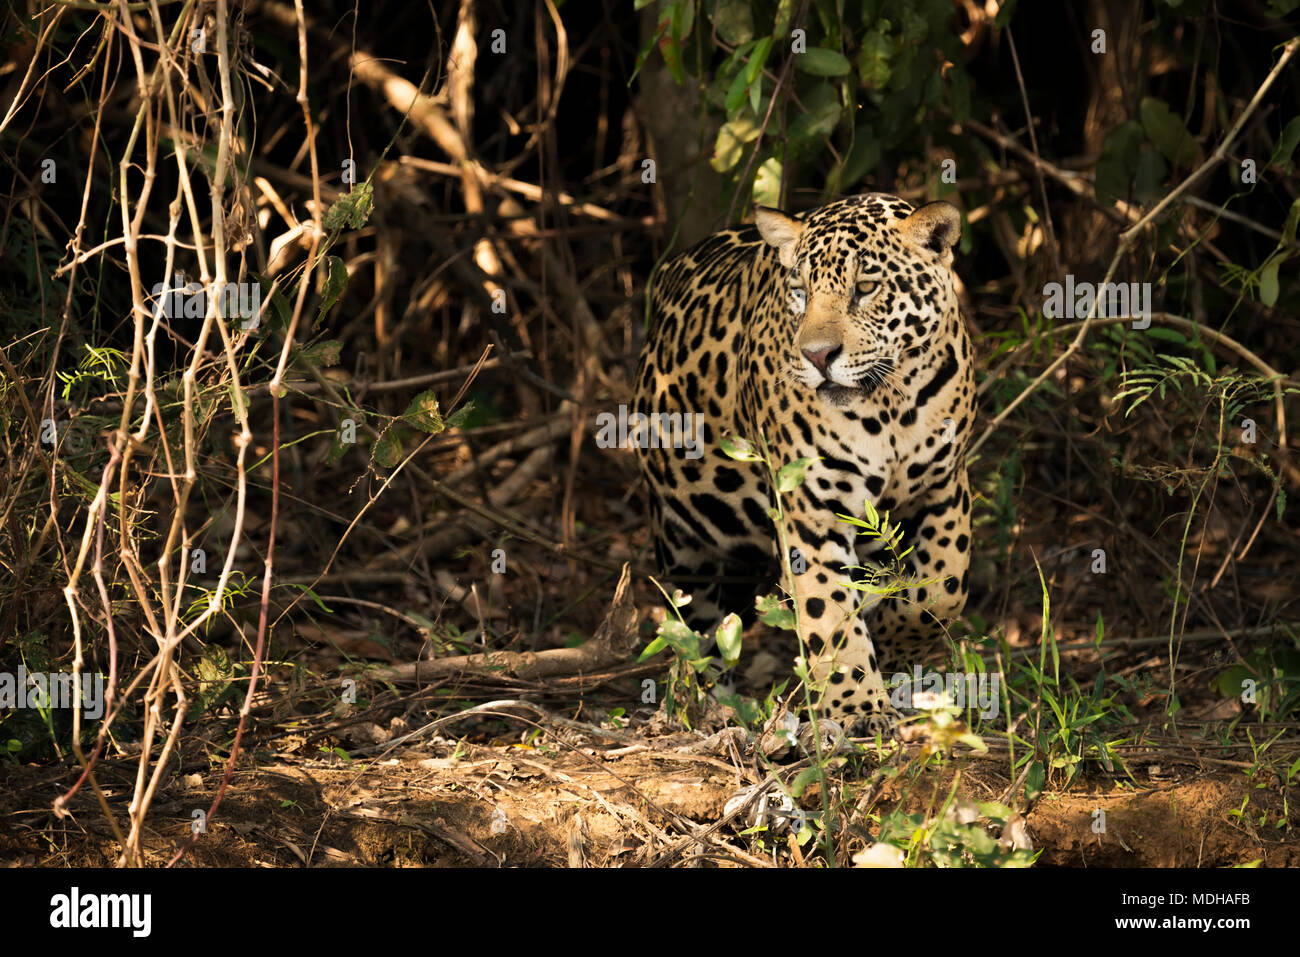 A Jaguar (Panthera onca) is prowling through dense forest in Brazil. It has a yellowish-brown coat with black spots and golden brown eyes, Pantanal - Stock Image